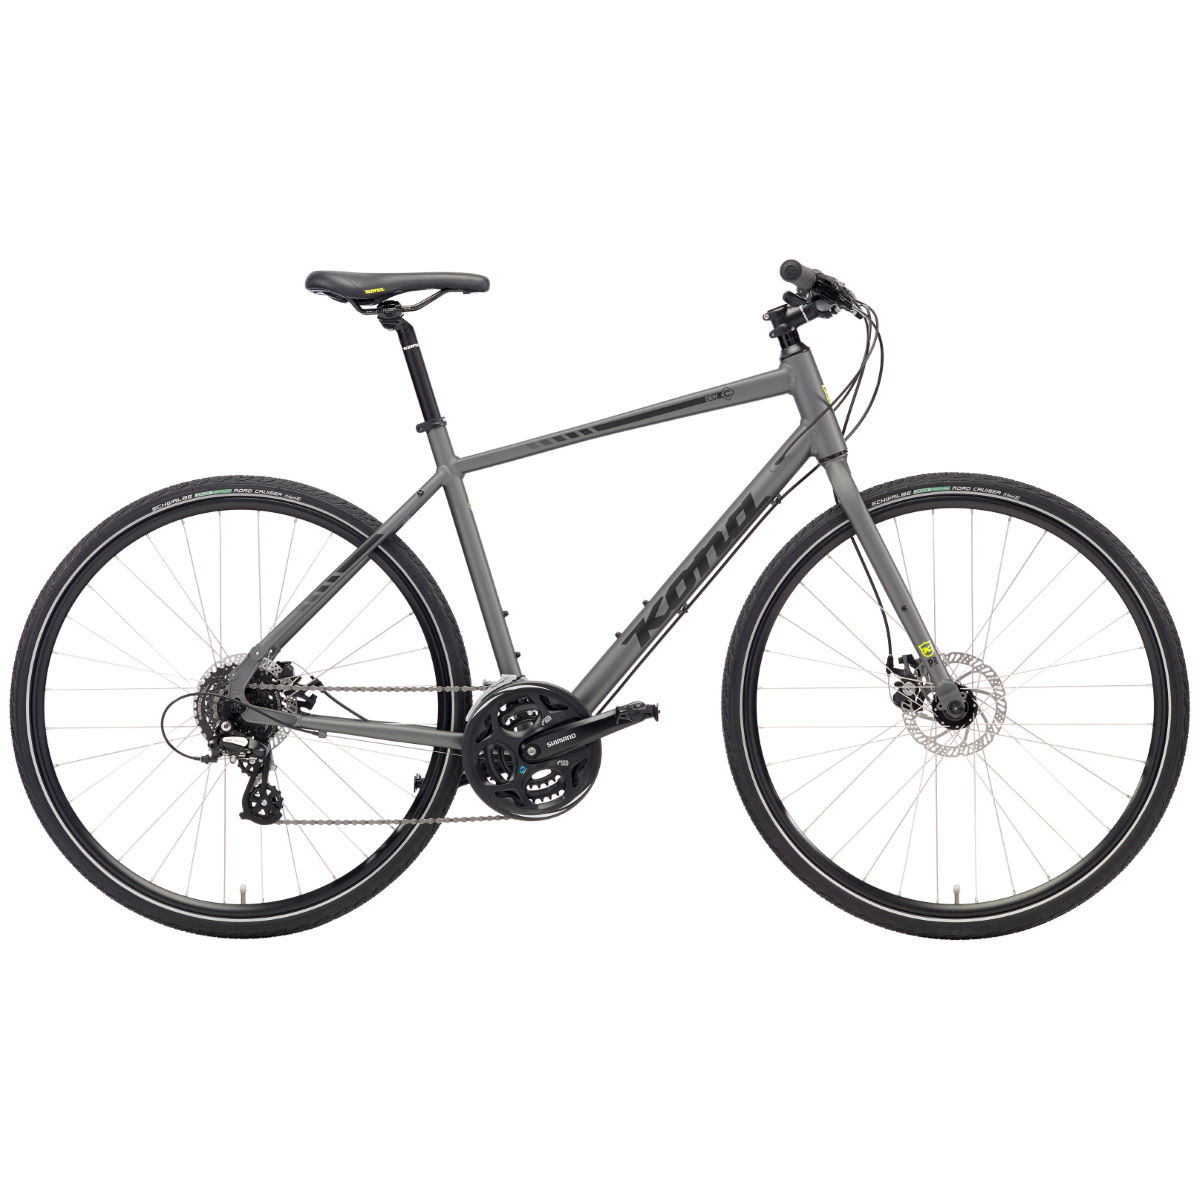 Vélo de route Kona Dew (2018) - 46 cm Stock Bike Grey